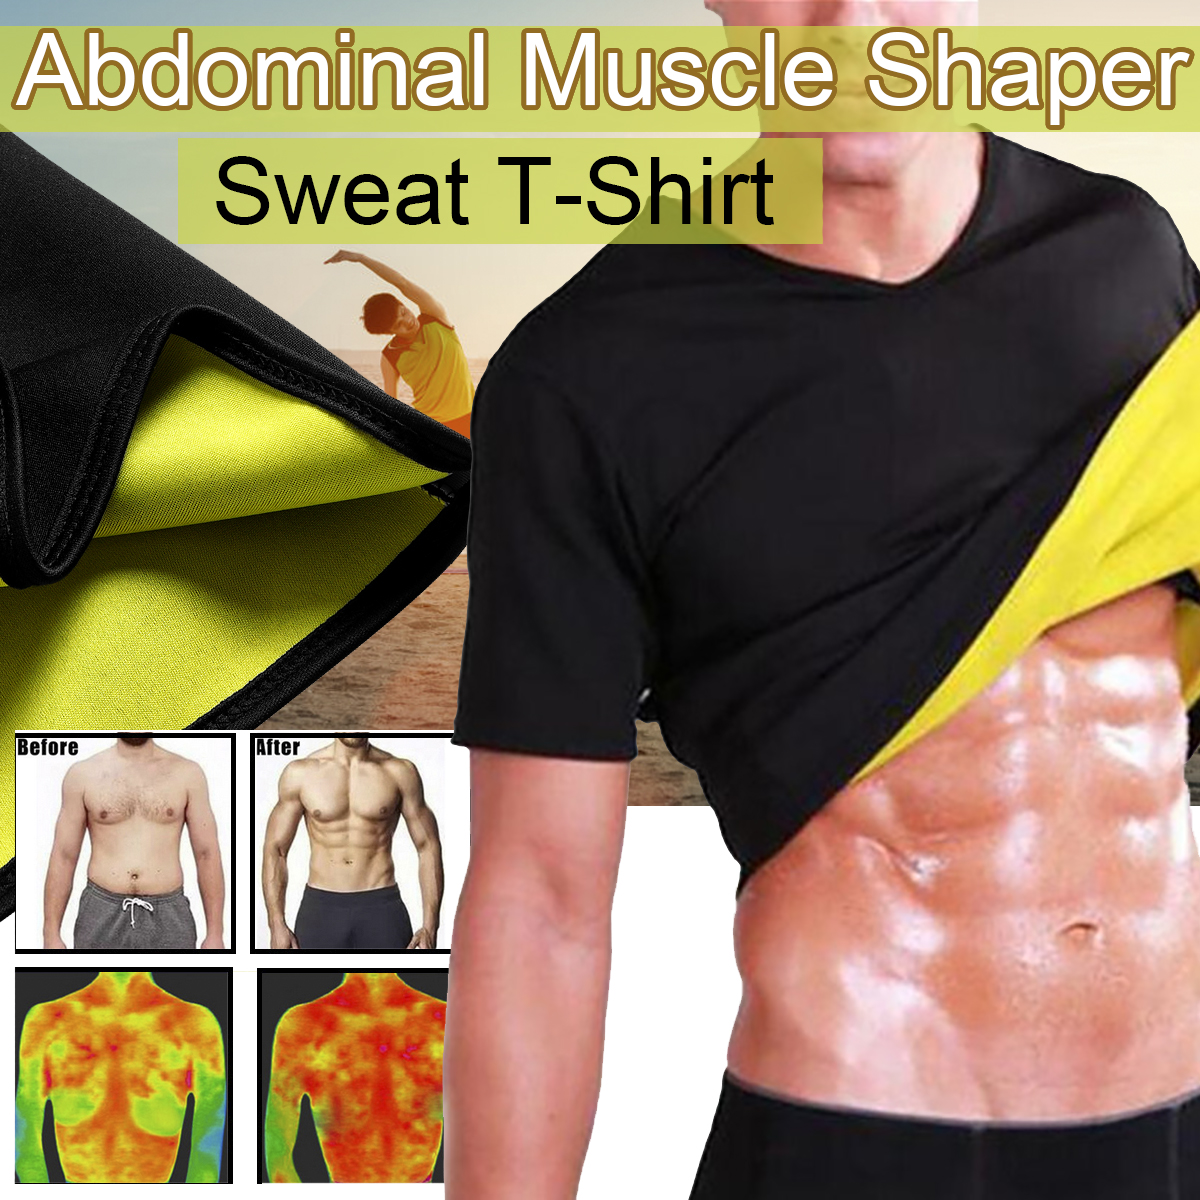 Men Sport Slimming Tummy Body Shaper Hot Thermo Sauna Sweat Yoga Gym T-Shirt Sharper Body Slimming Sport Clothes Wear Fitness